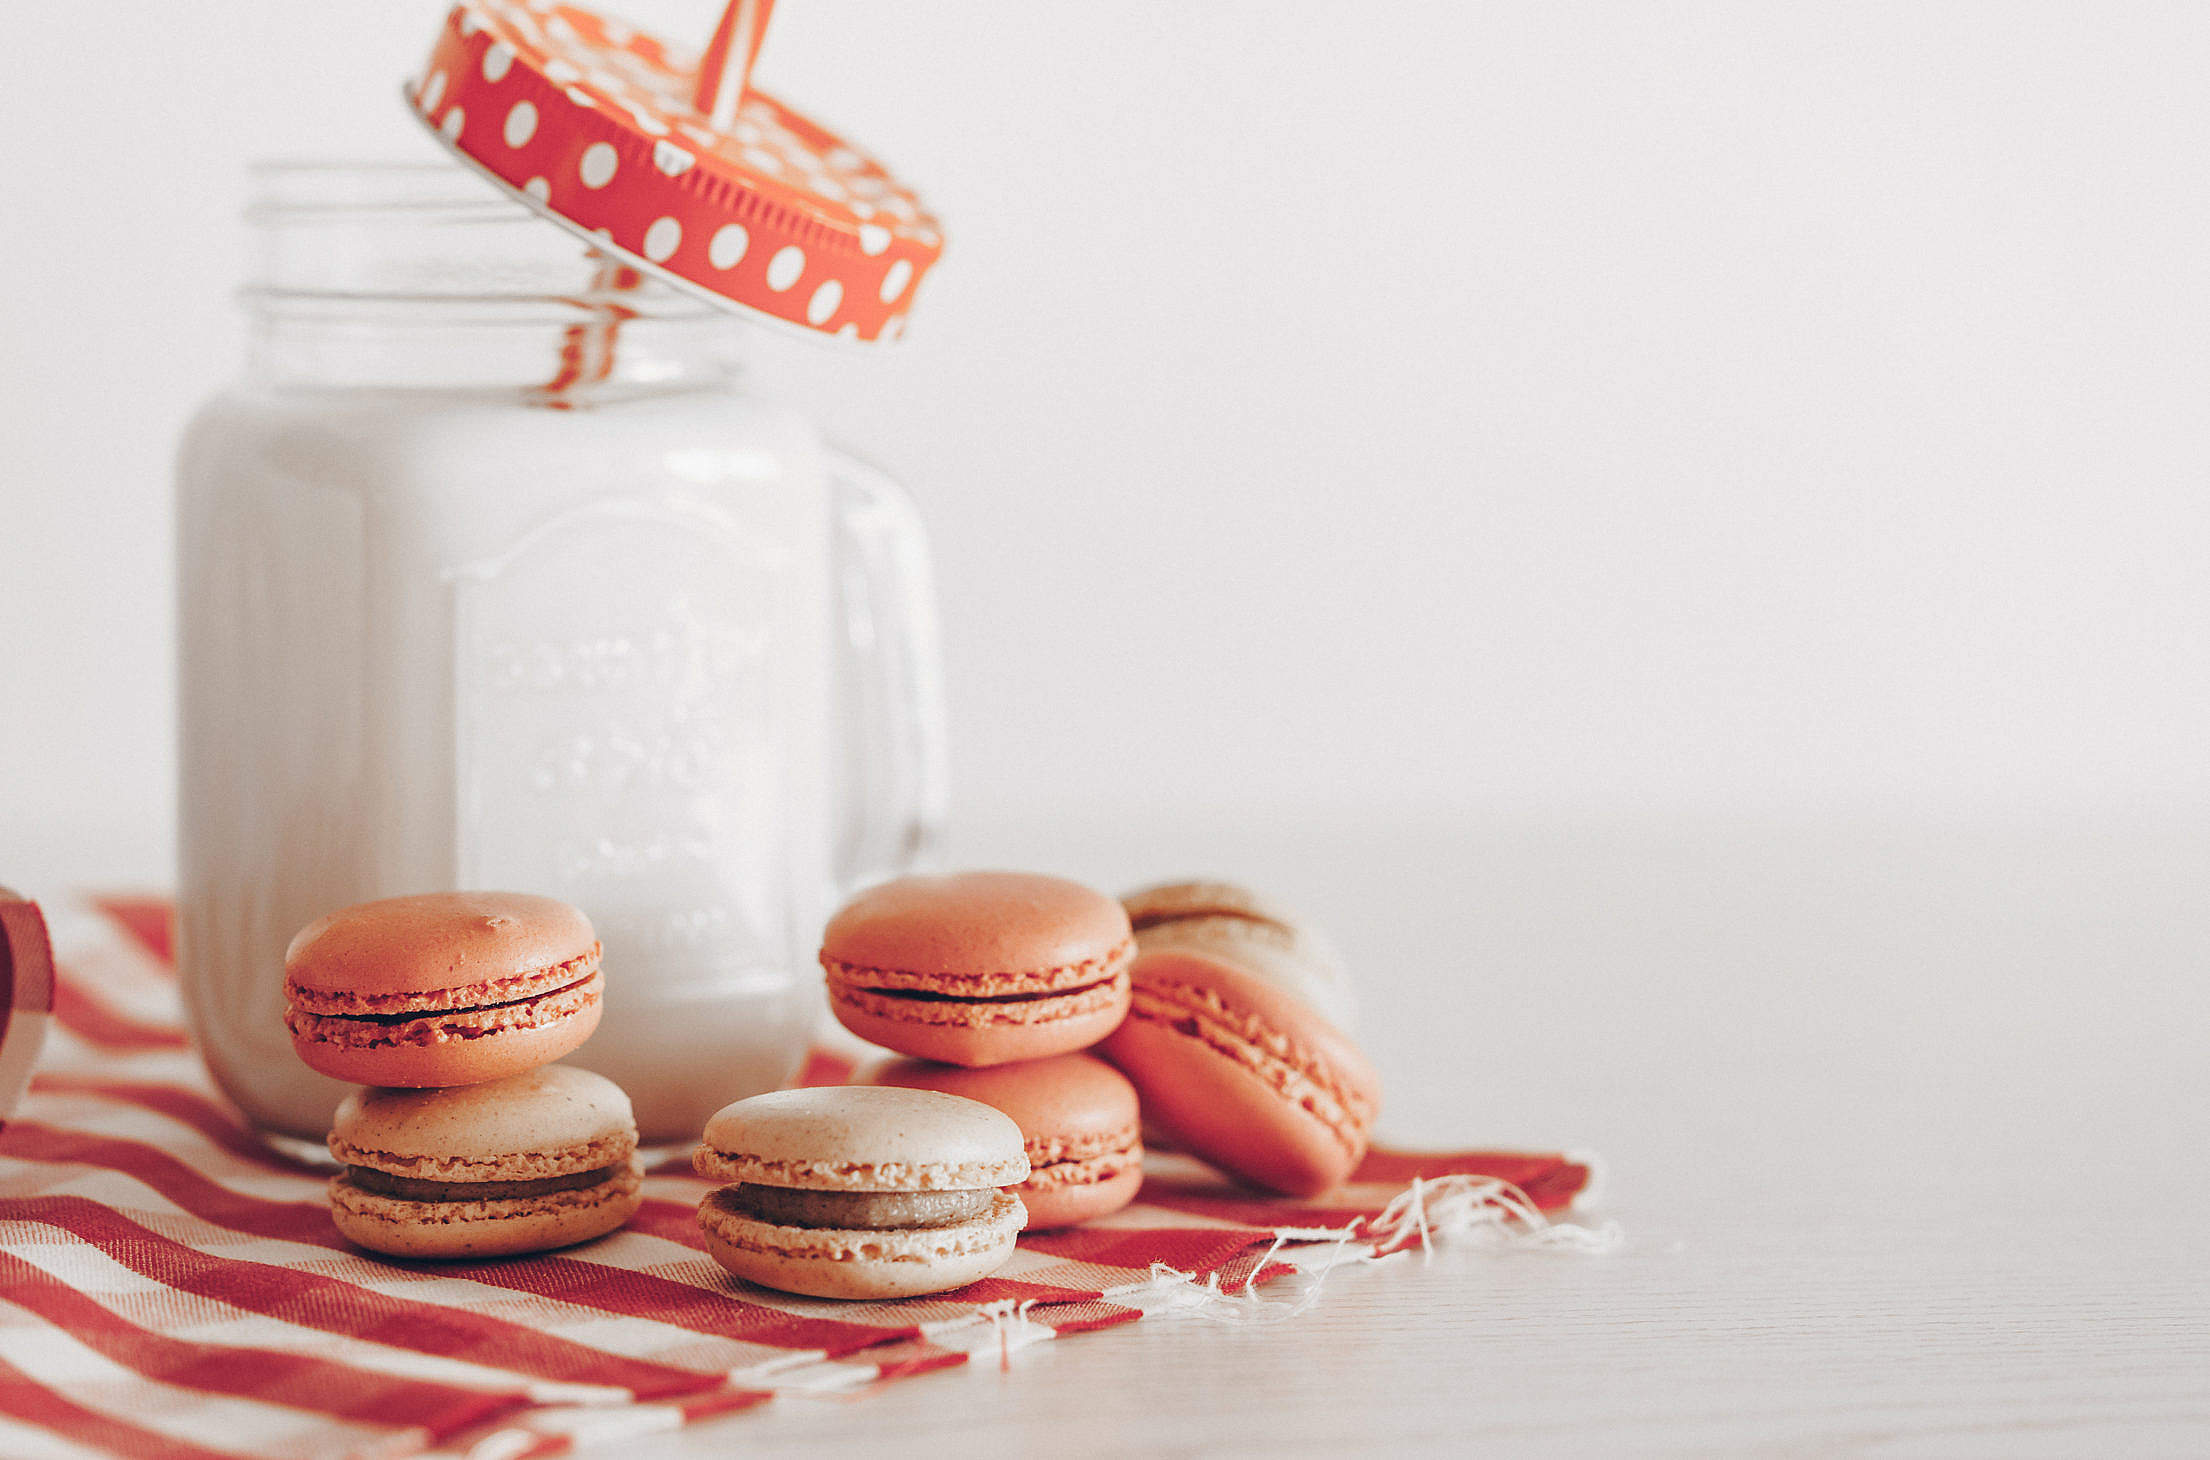 Homemade Macarons With a Glass of Milk Free Stock Photo